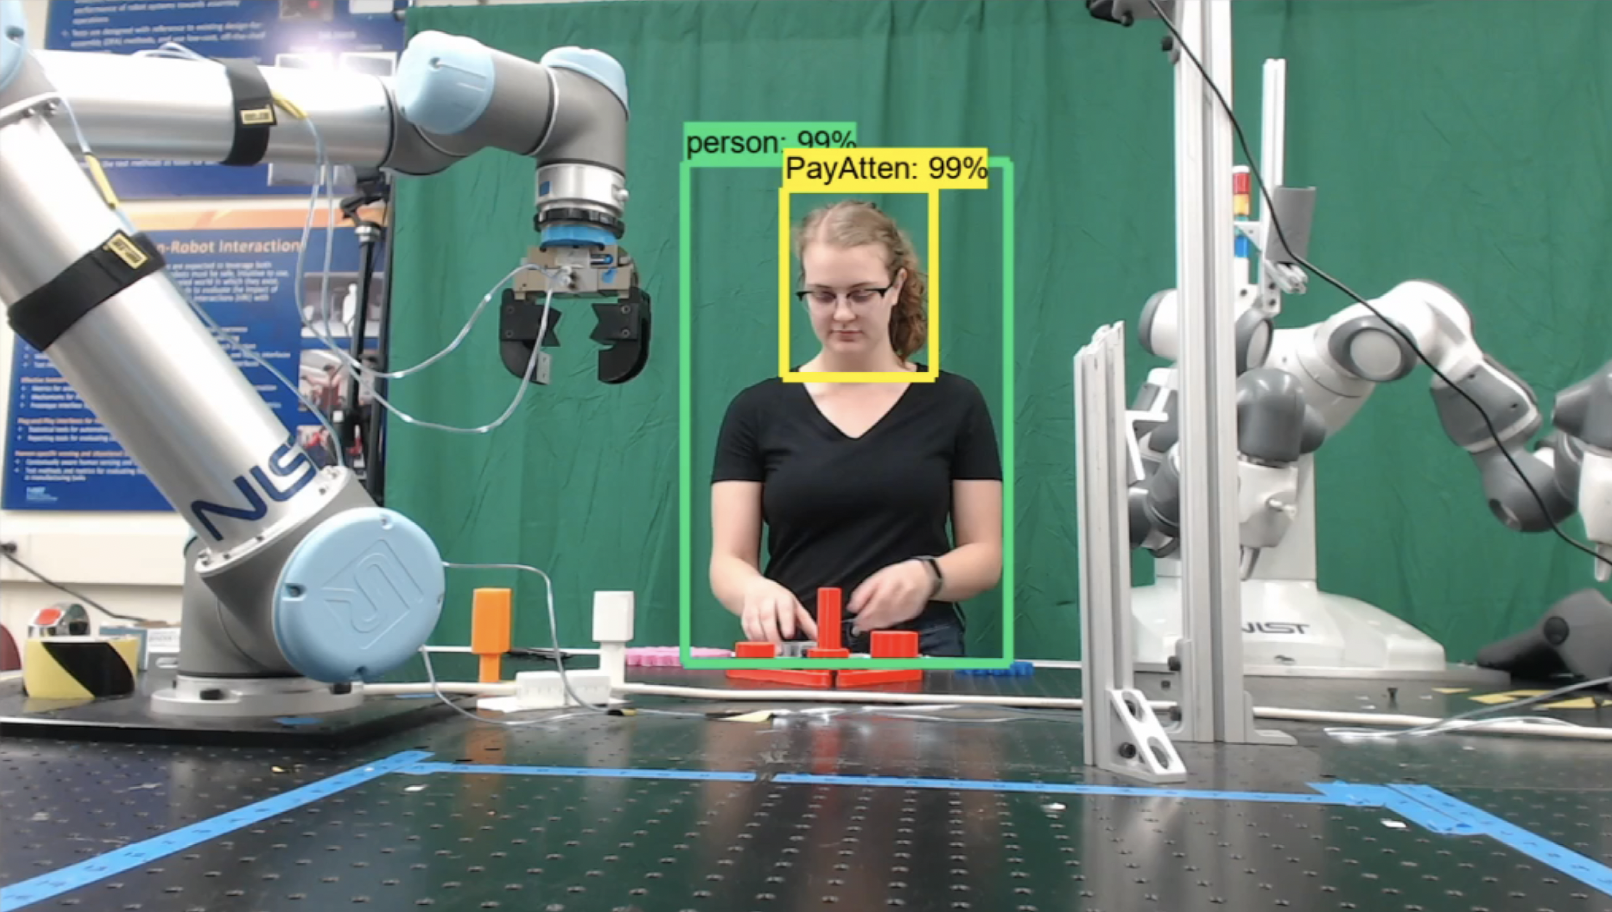 Researcher moves differently shaped and colored plastic blocks on a table as a robotic arm looks on